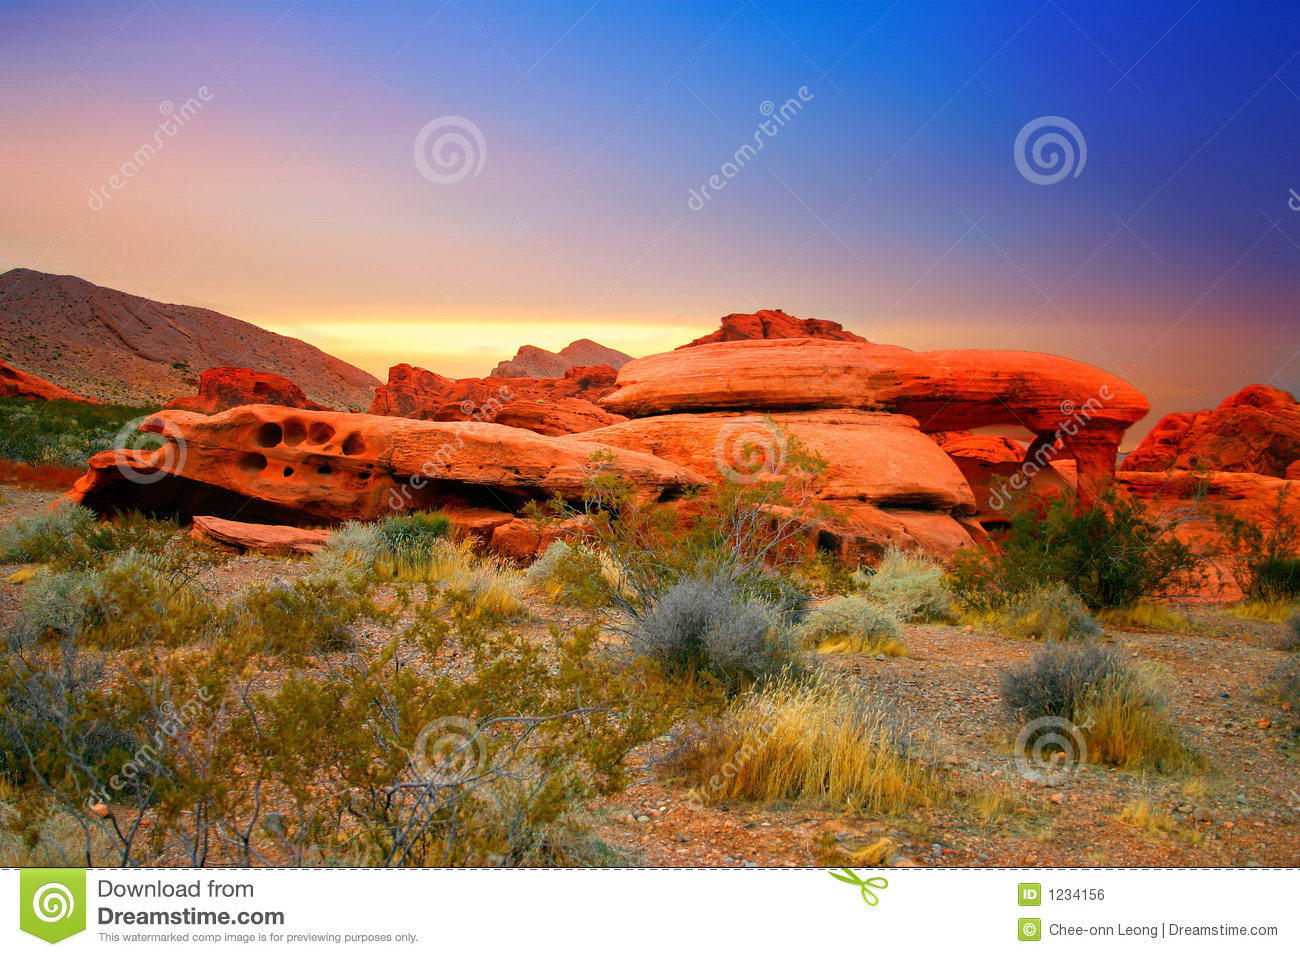 Red Rock Canyon clipart #17, Download drawings